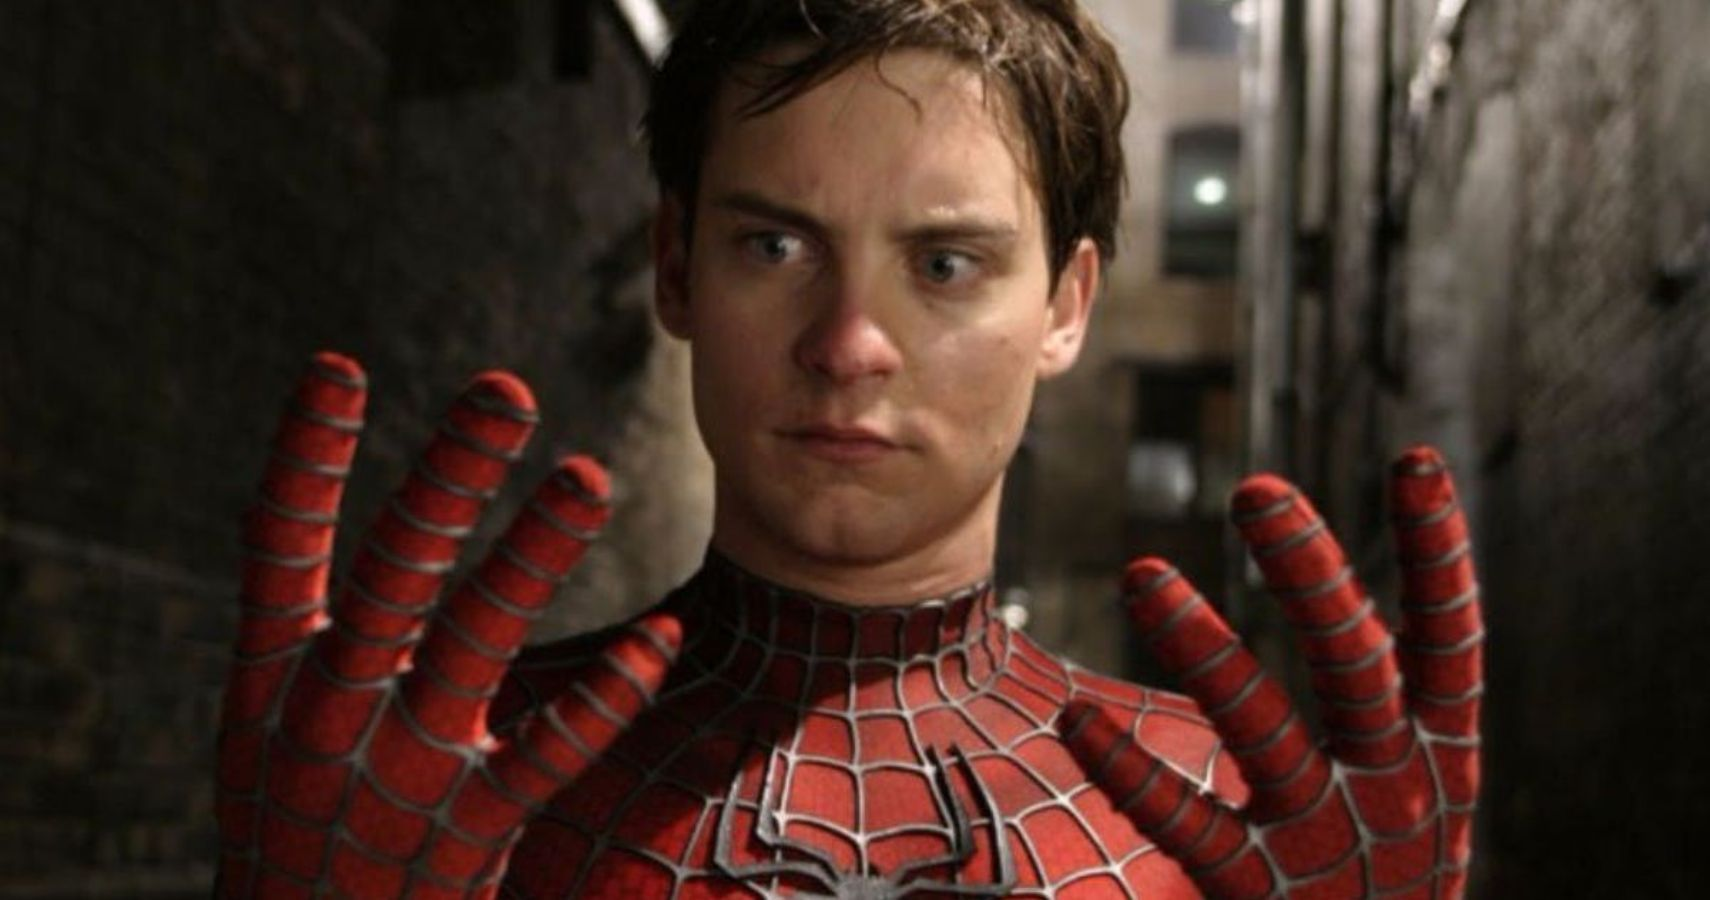 Spanish Dub Actor May Have Confirmed Tobey Maguire's Involvement In Spider-Man: No Way Home